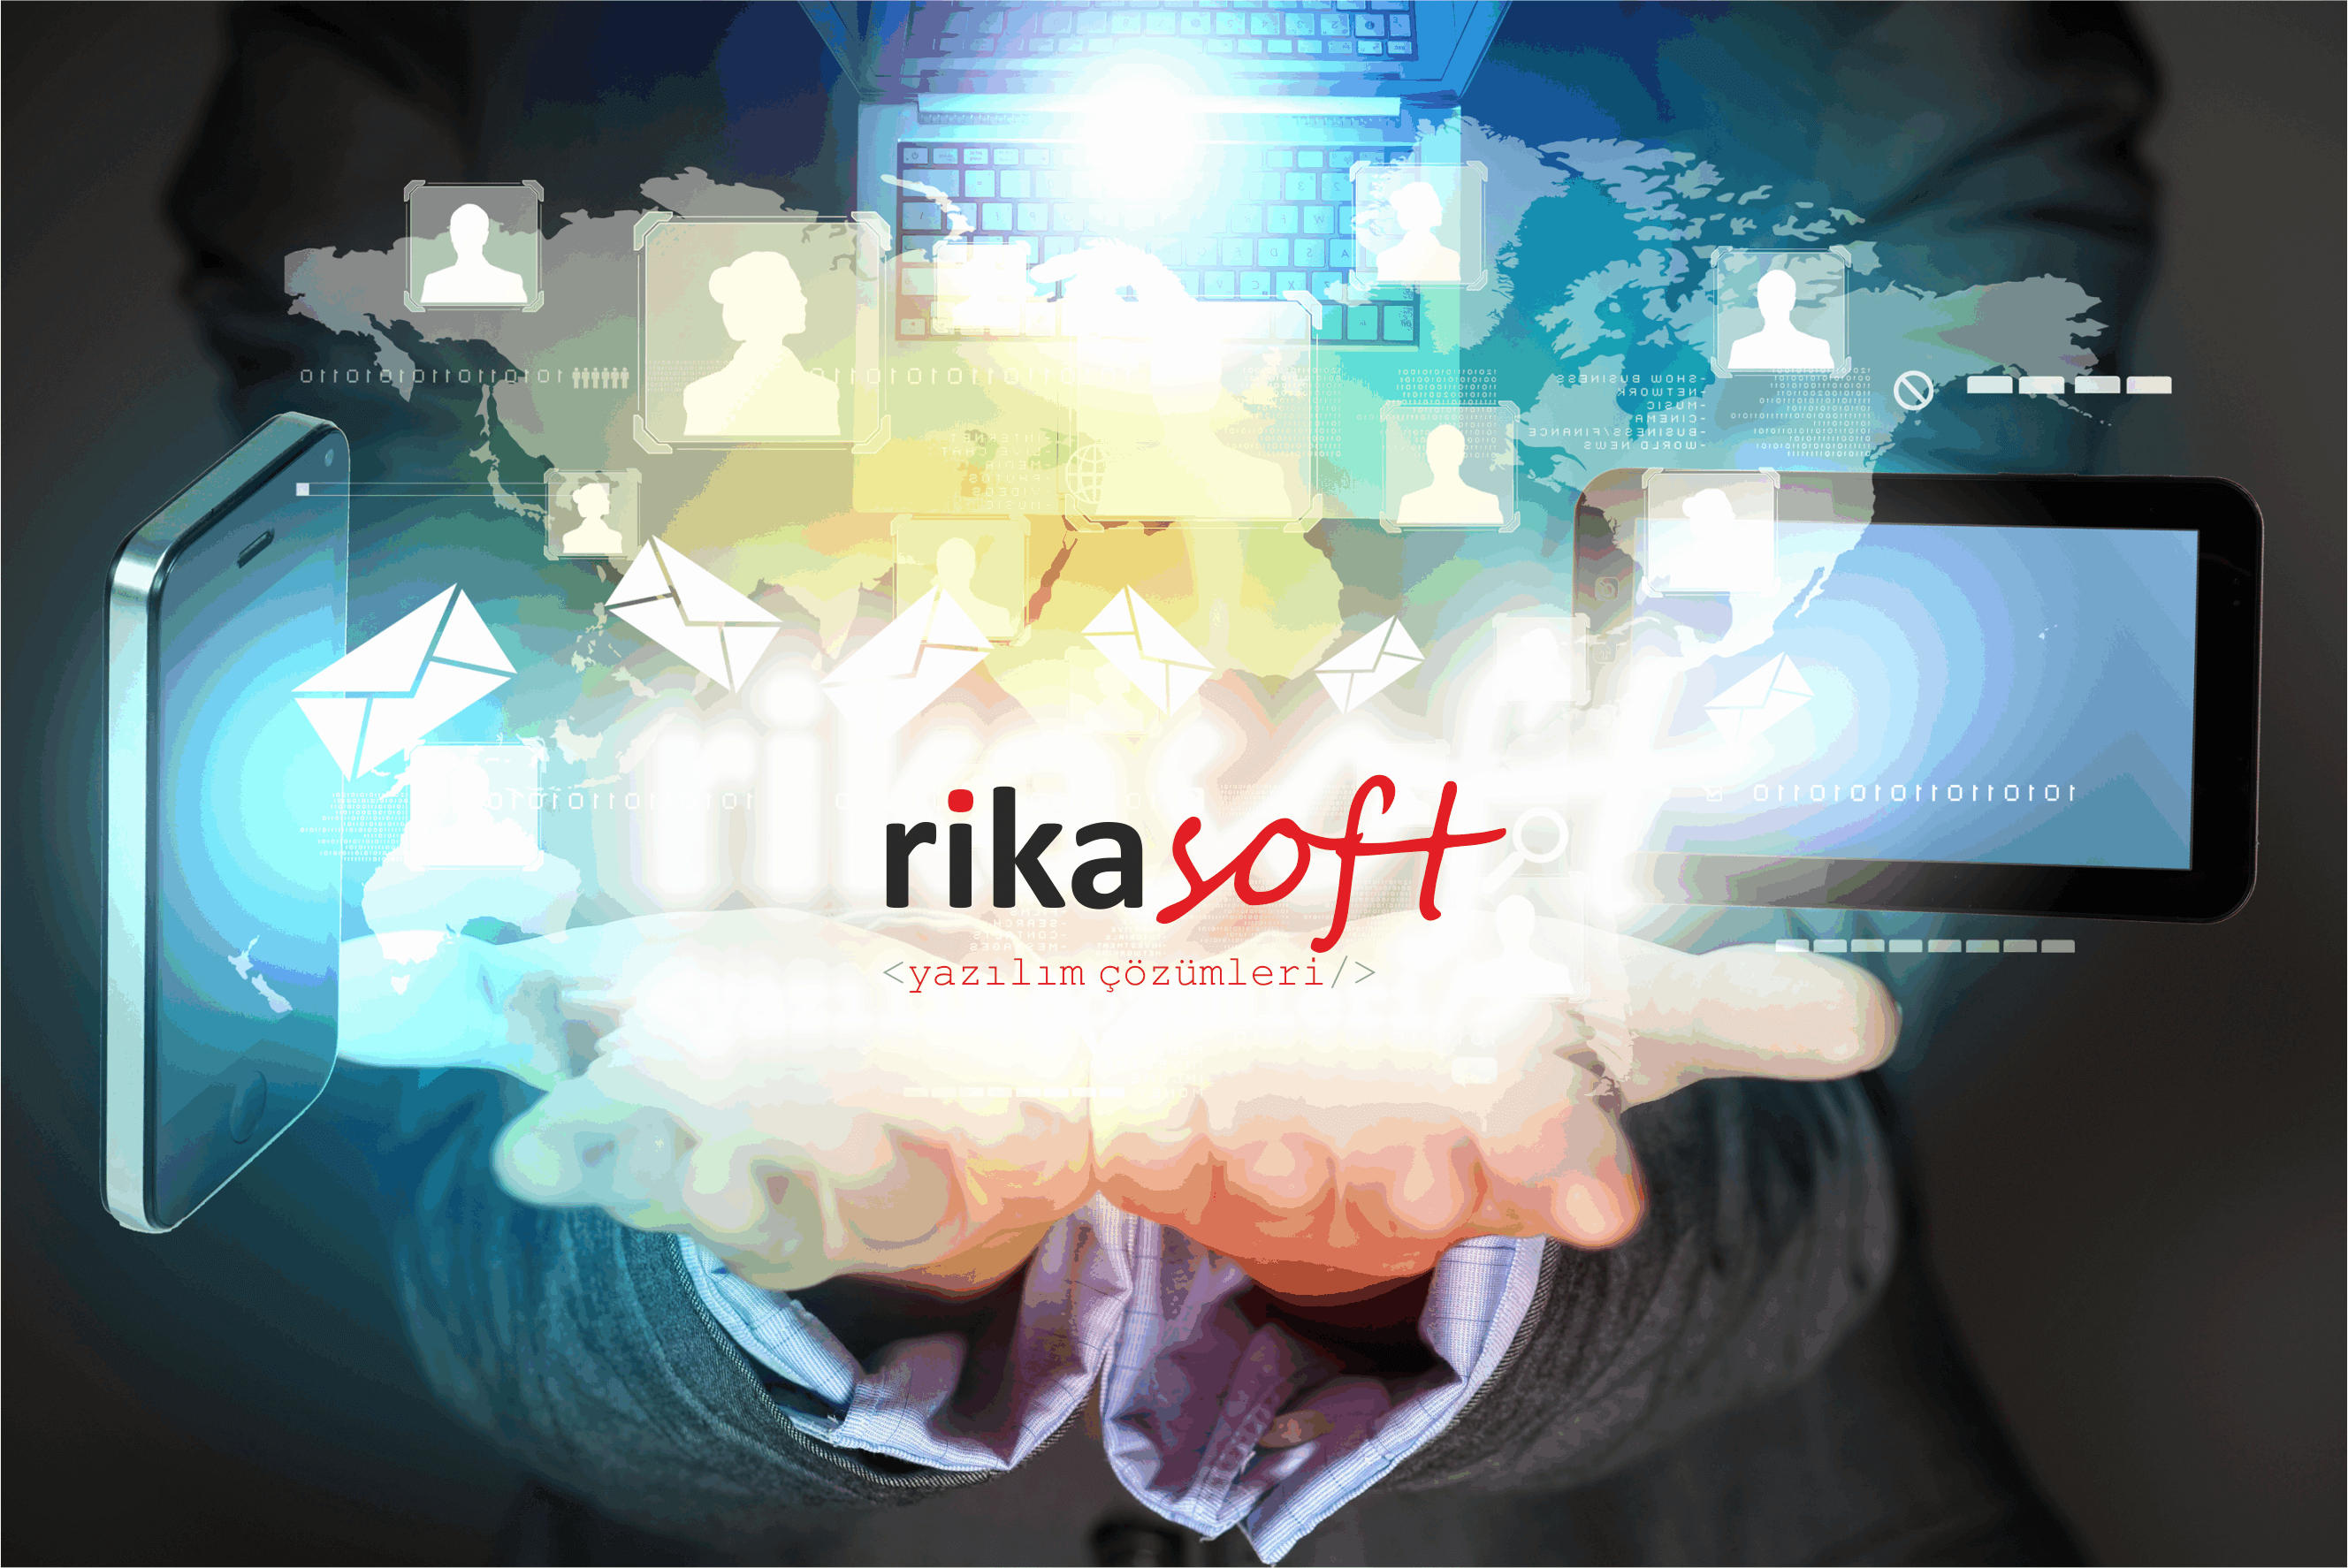 About RikaSoft Software Solutions in Cyprus